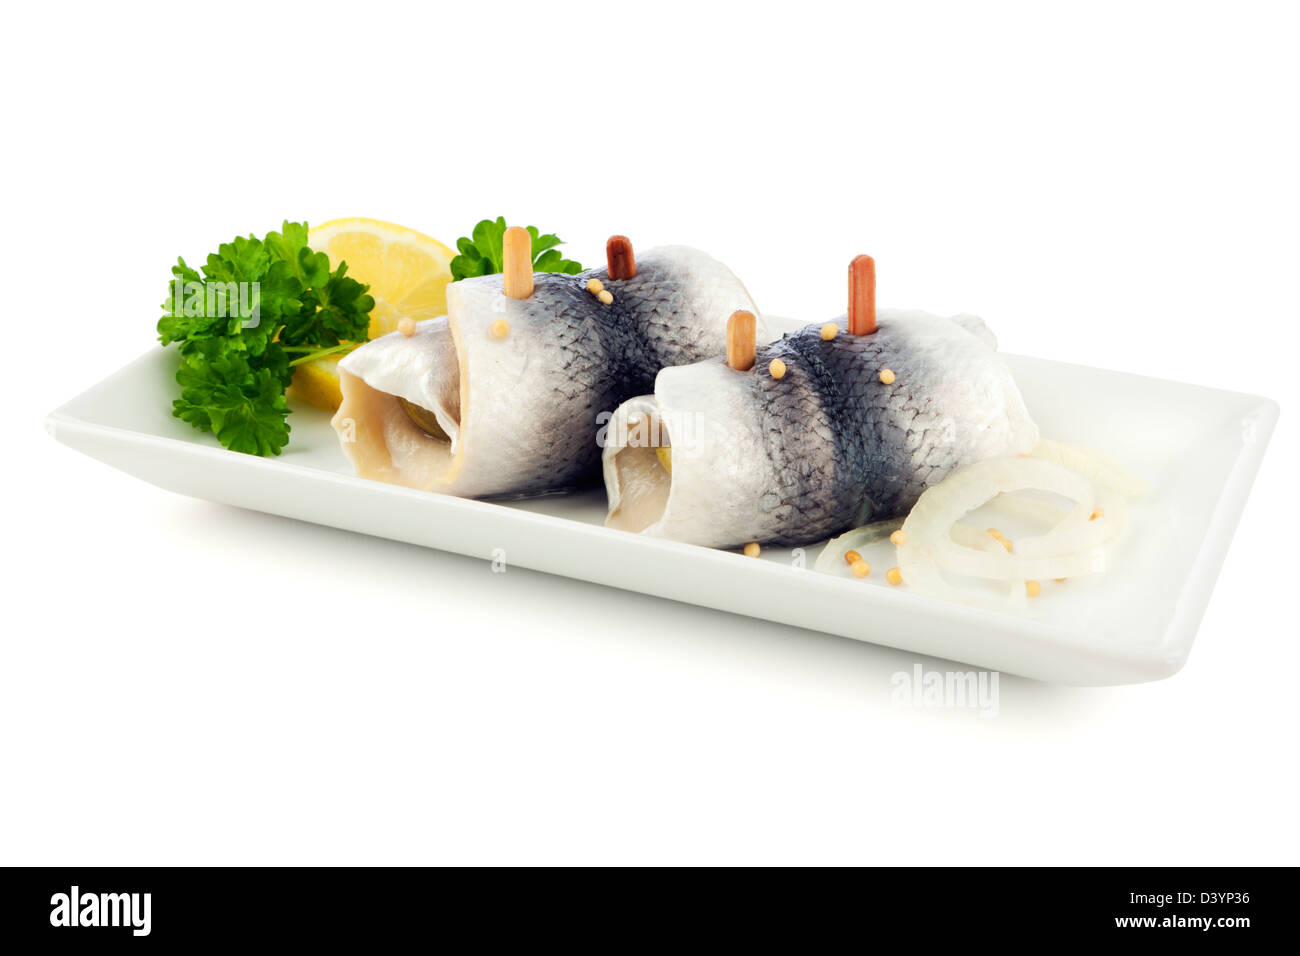 German Rollmops - kipper wrapped around pickled cucumber - on a square plate on white background - Stock Image